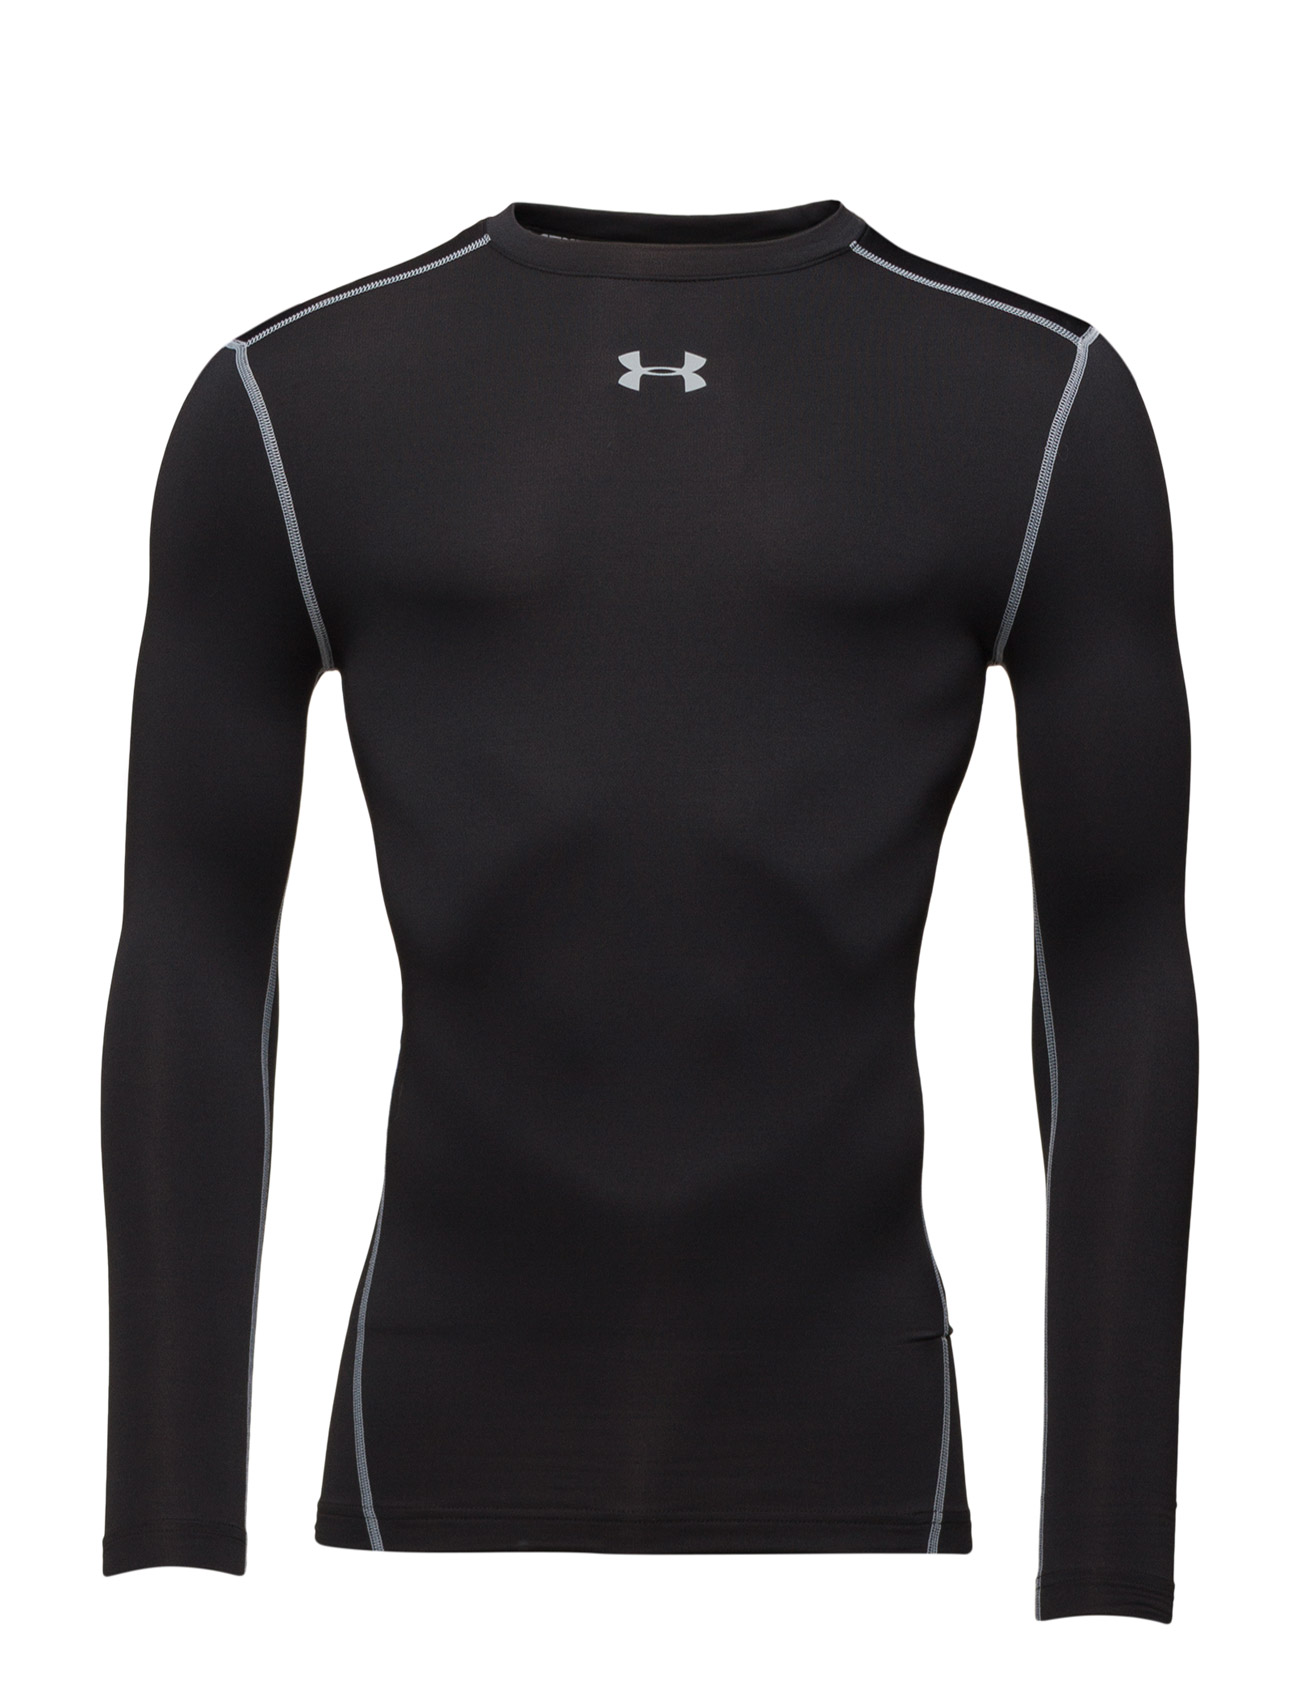 Ua Cg Armour Crew Under Armour Sports toppe til Mænd i Sort